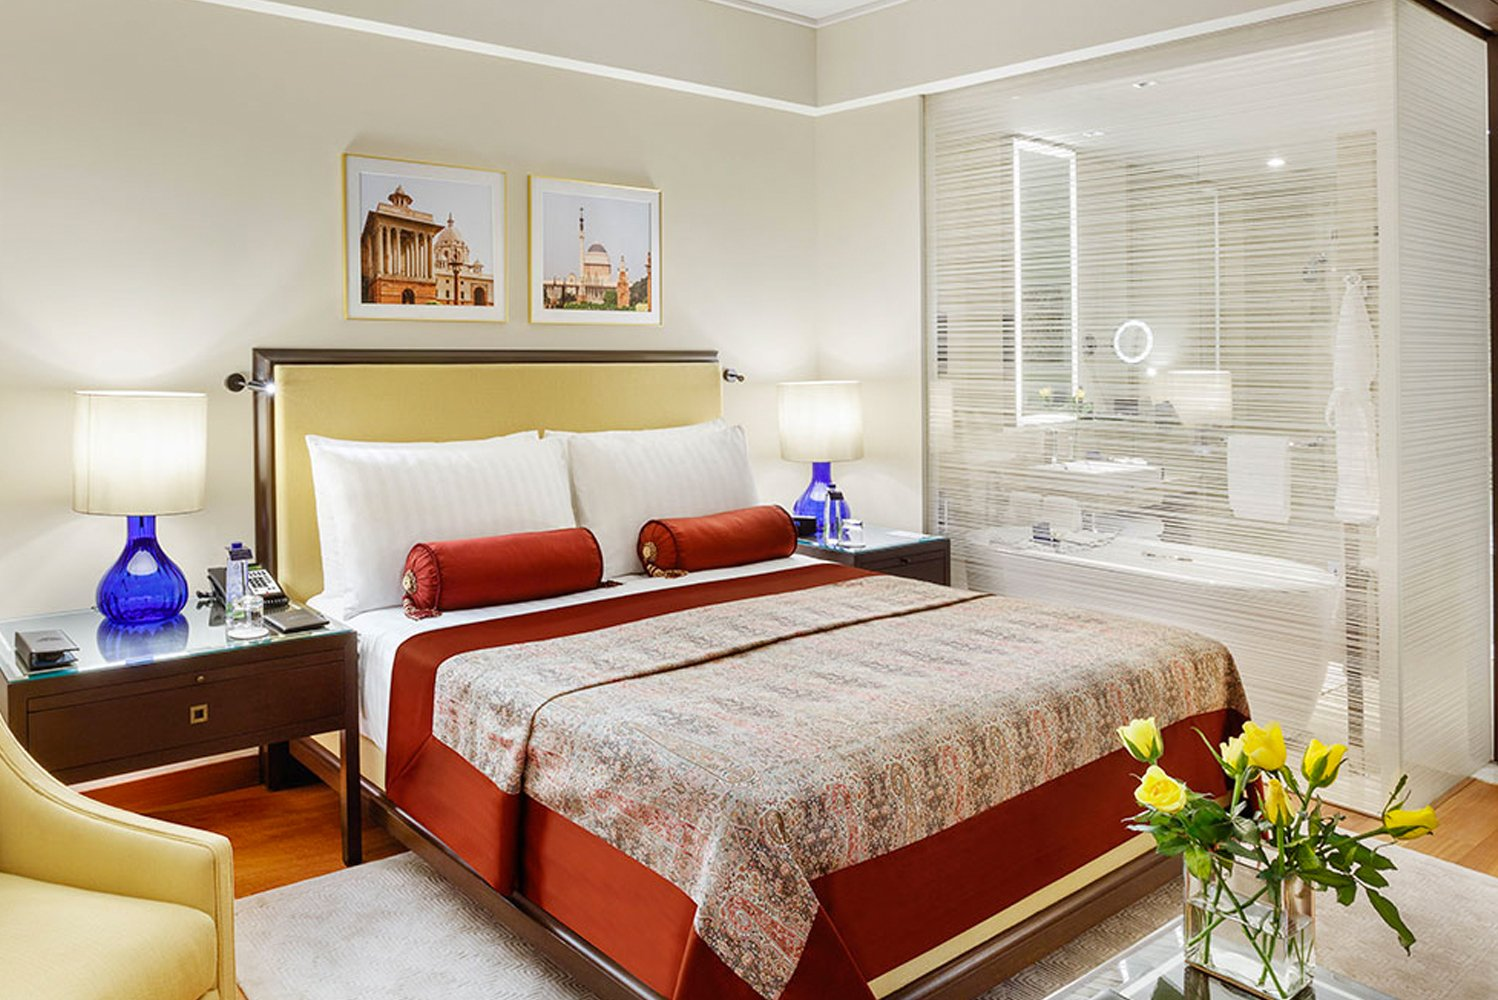 The hotel now has 220 larger rooms and suites, from 283 rooms in the past, all of them inspired by Lutyens' New Delhi design.